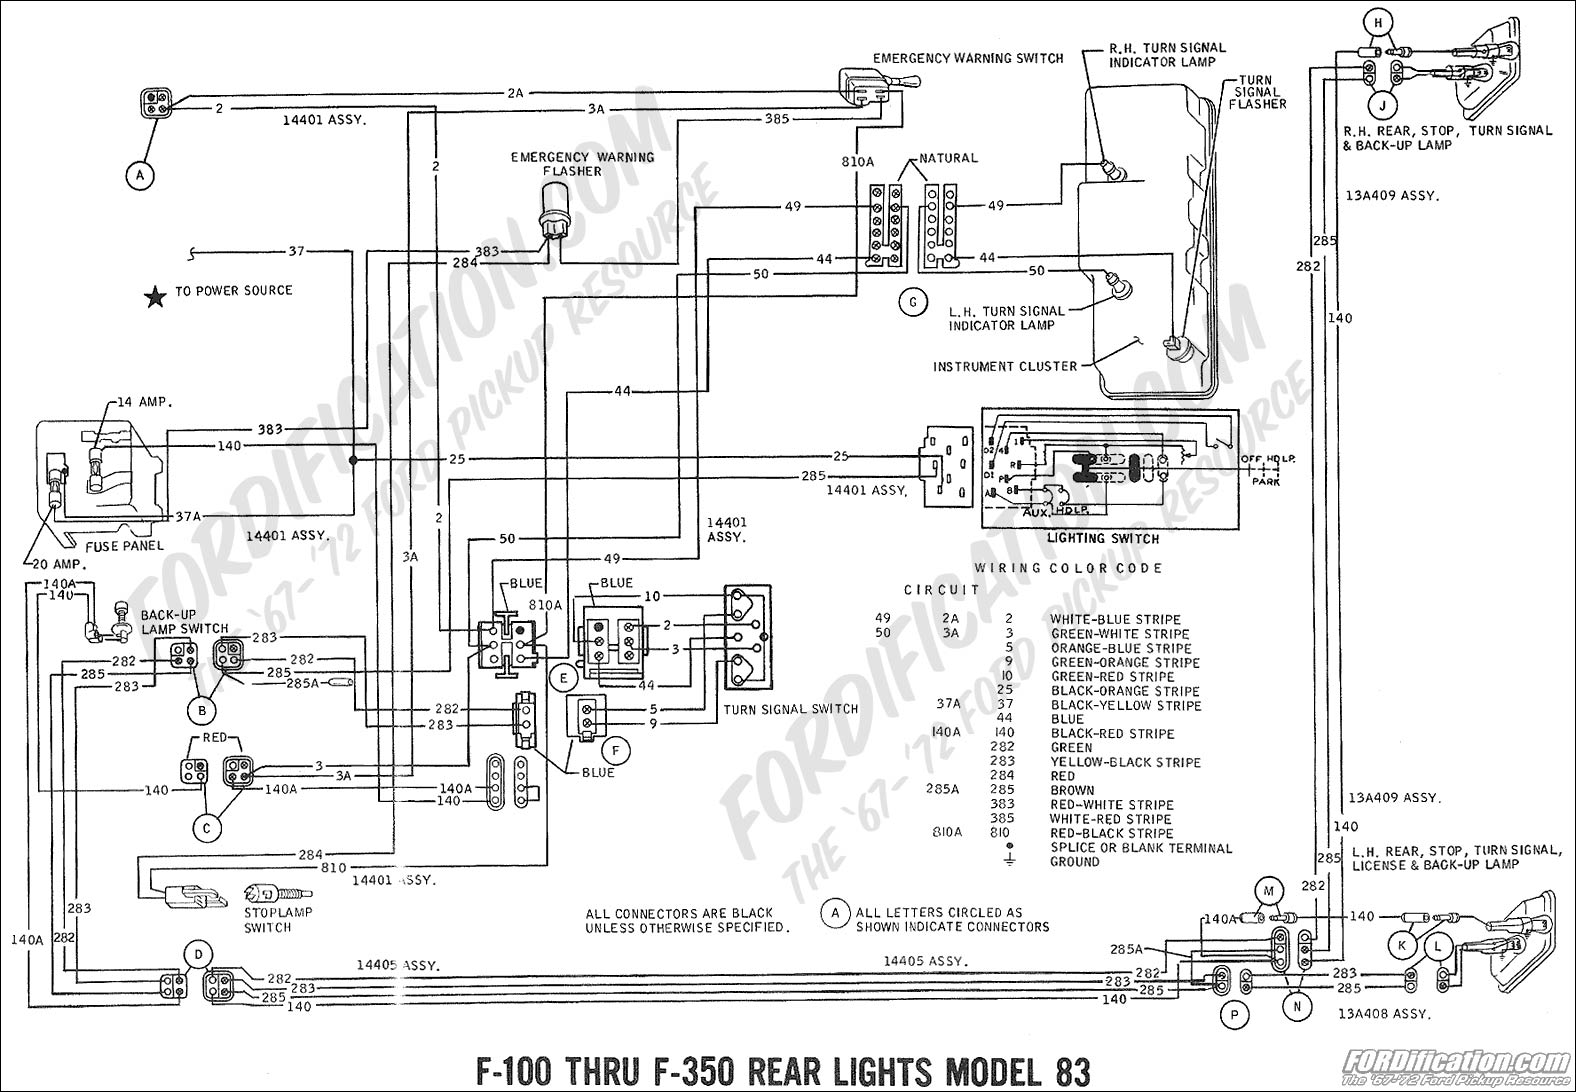 1969 Mustang Brake Light Wiring Diagram Smart Diagrams 2011 Fuse Box Ford Switch Schematic Rh Ogmconsulting Co